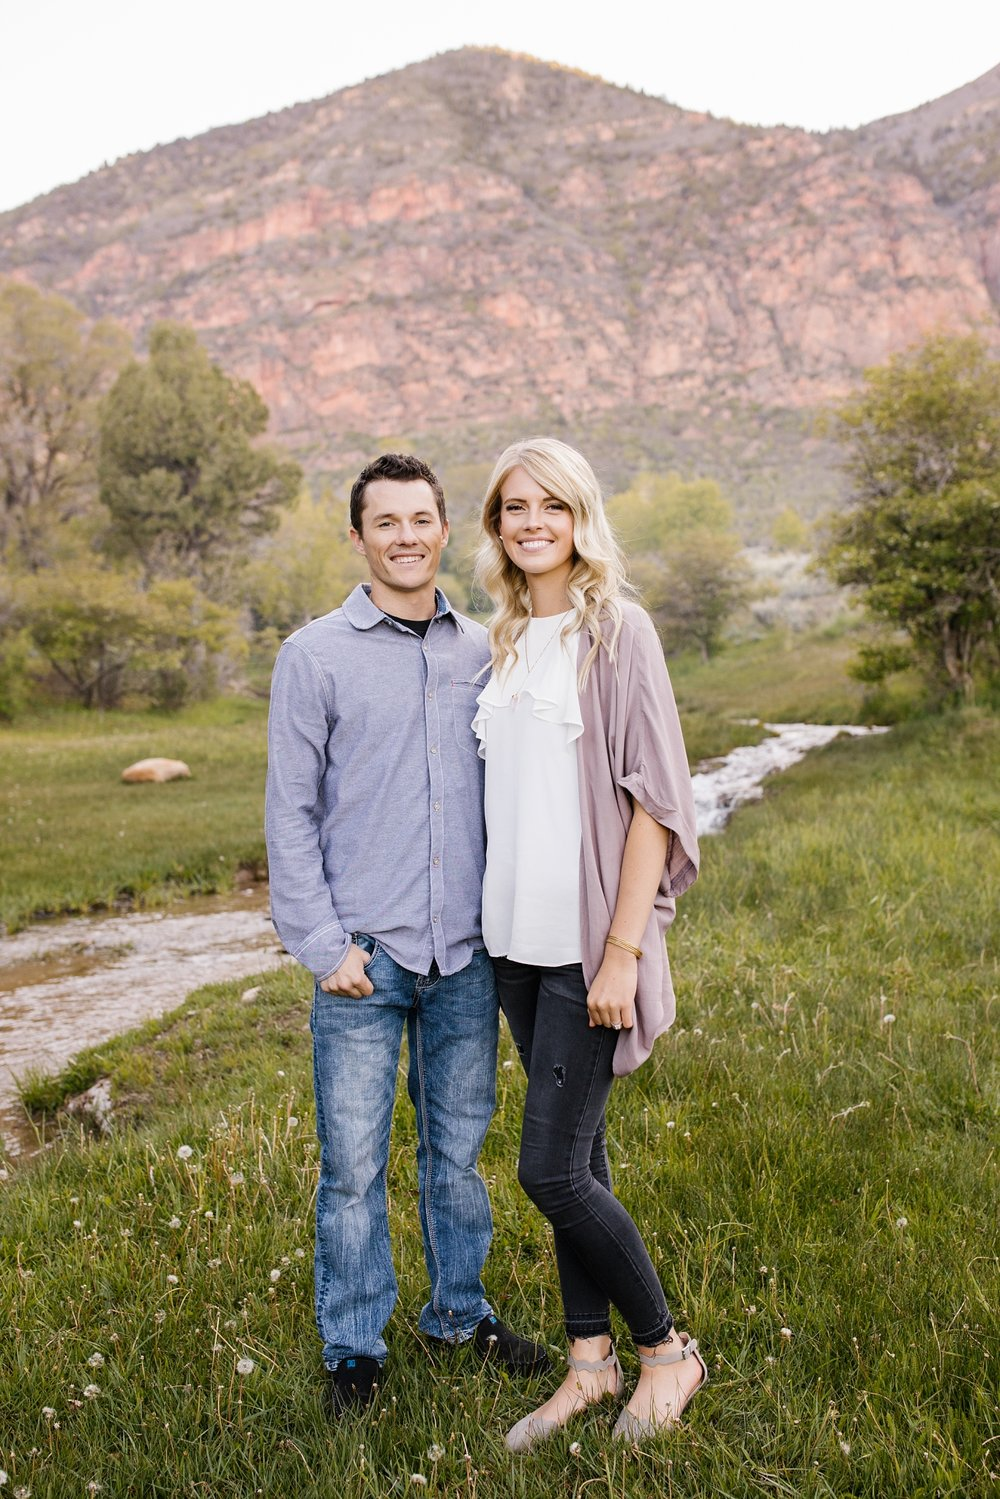 Bagley-136_Lizzie-B-Imagery-Utah-Family-Photographer-Central-Utah-Extended-Family-Session.jpg